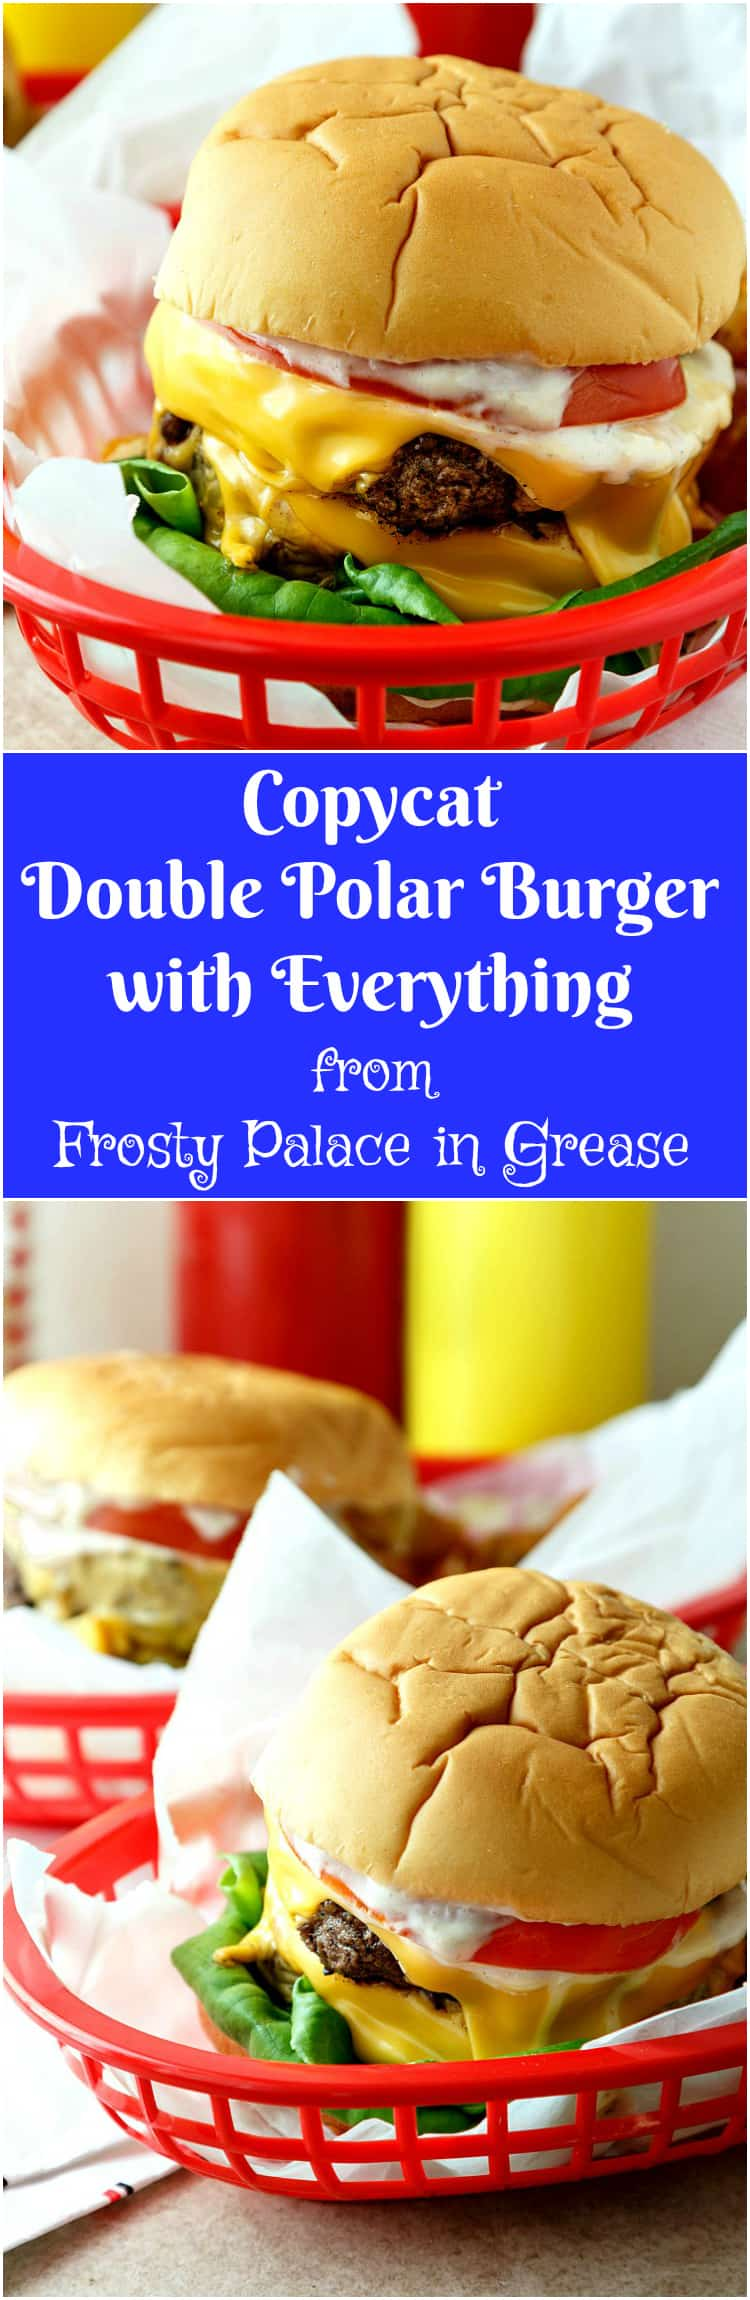 Grab your best girl or guy and make these copycat Double Polar Burgers with Everything. Yes, you too can imagine eating at Frosty Palace with Danny, Sandy, and the gang from Grease!